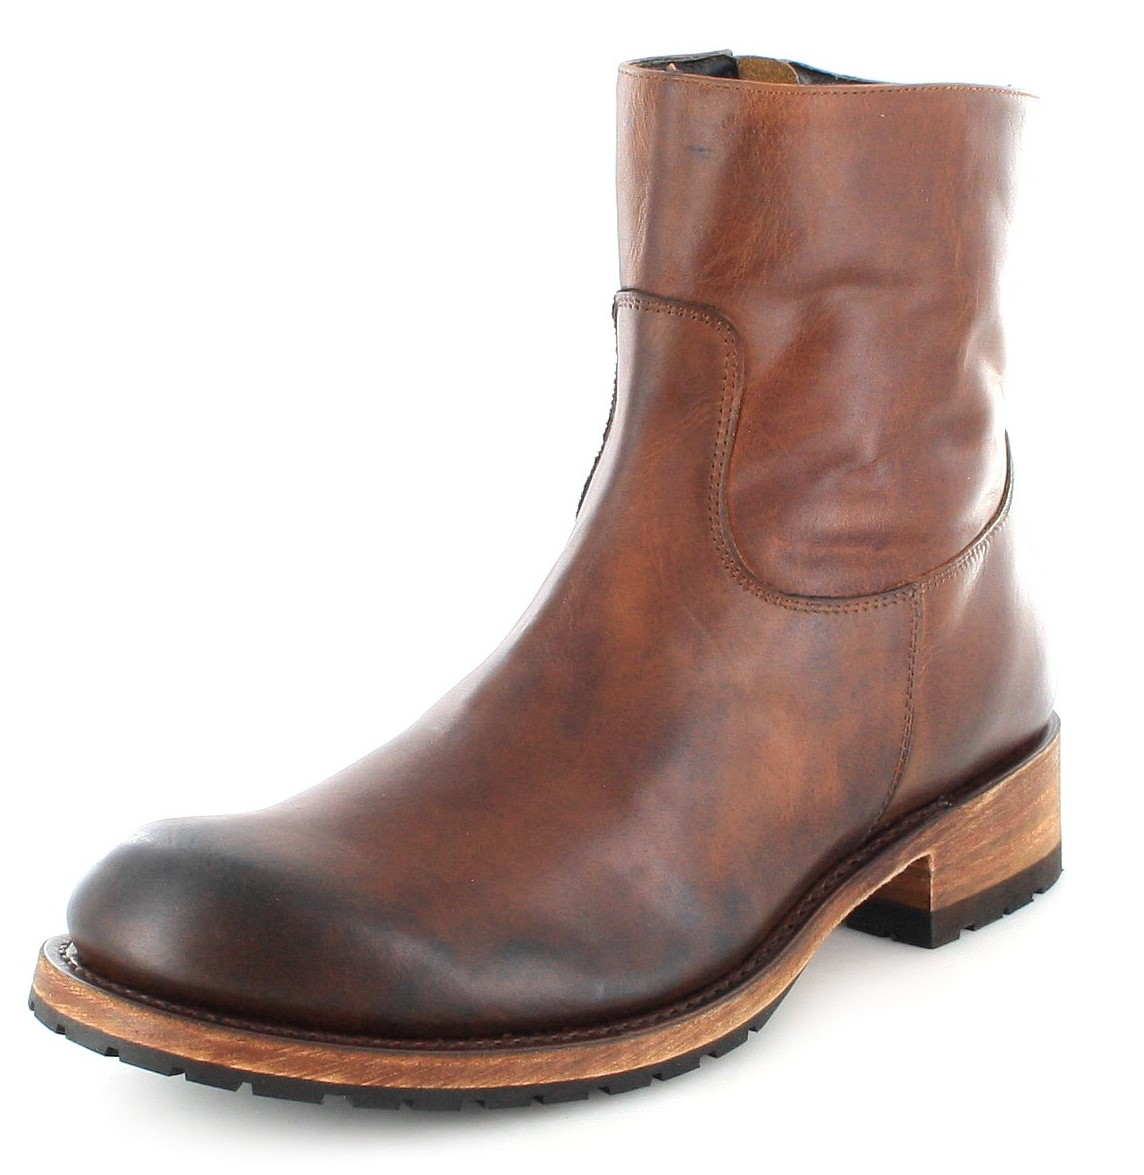 Sendra Boots 9491 Tang Usado Negro Western ankle boot - Brown